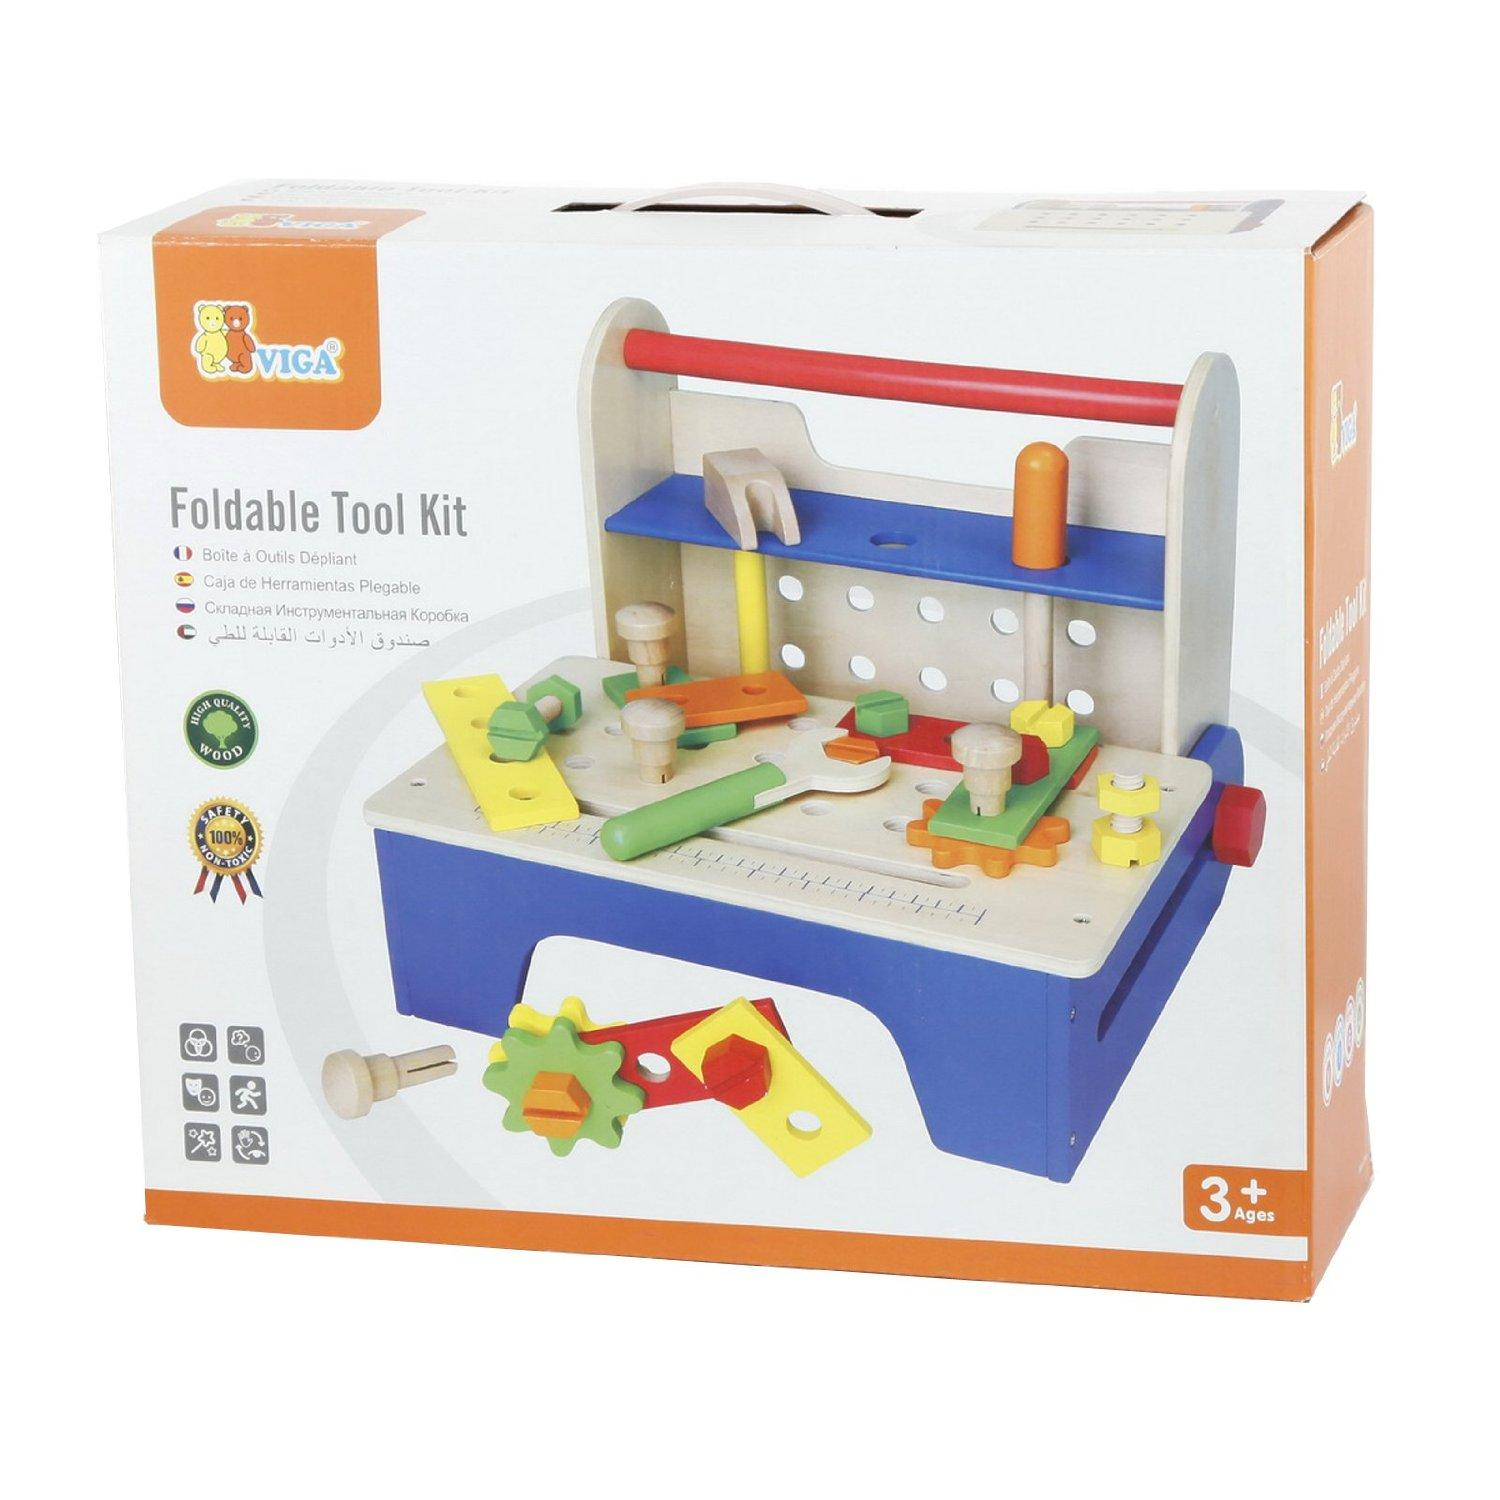 Toy Tool Kits For Boys : New childrens kids wood play toy tool bench box kit set